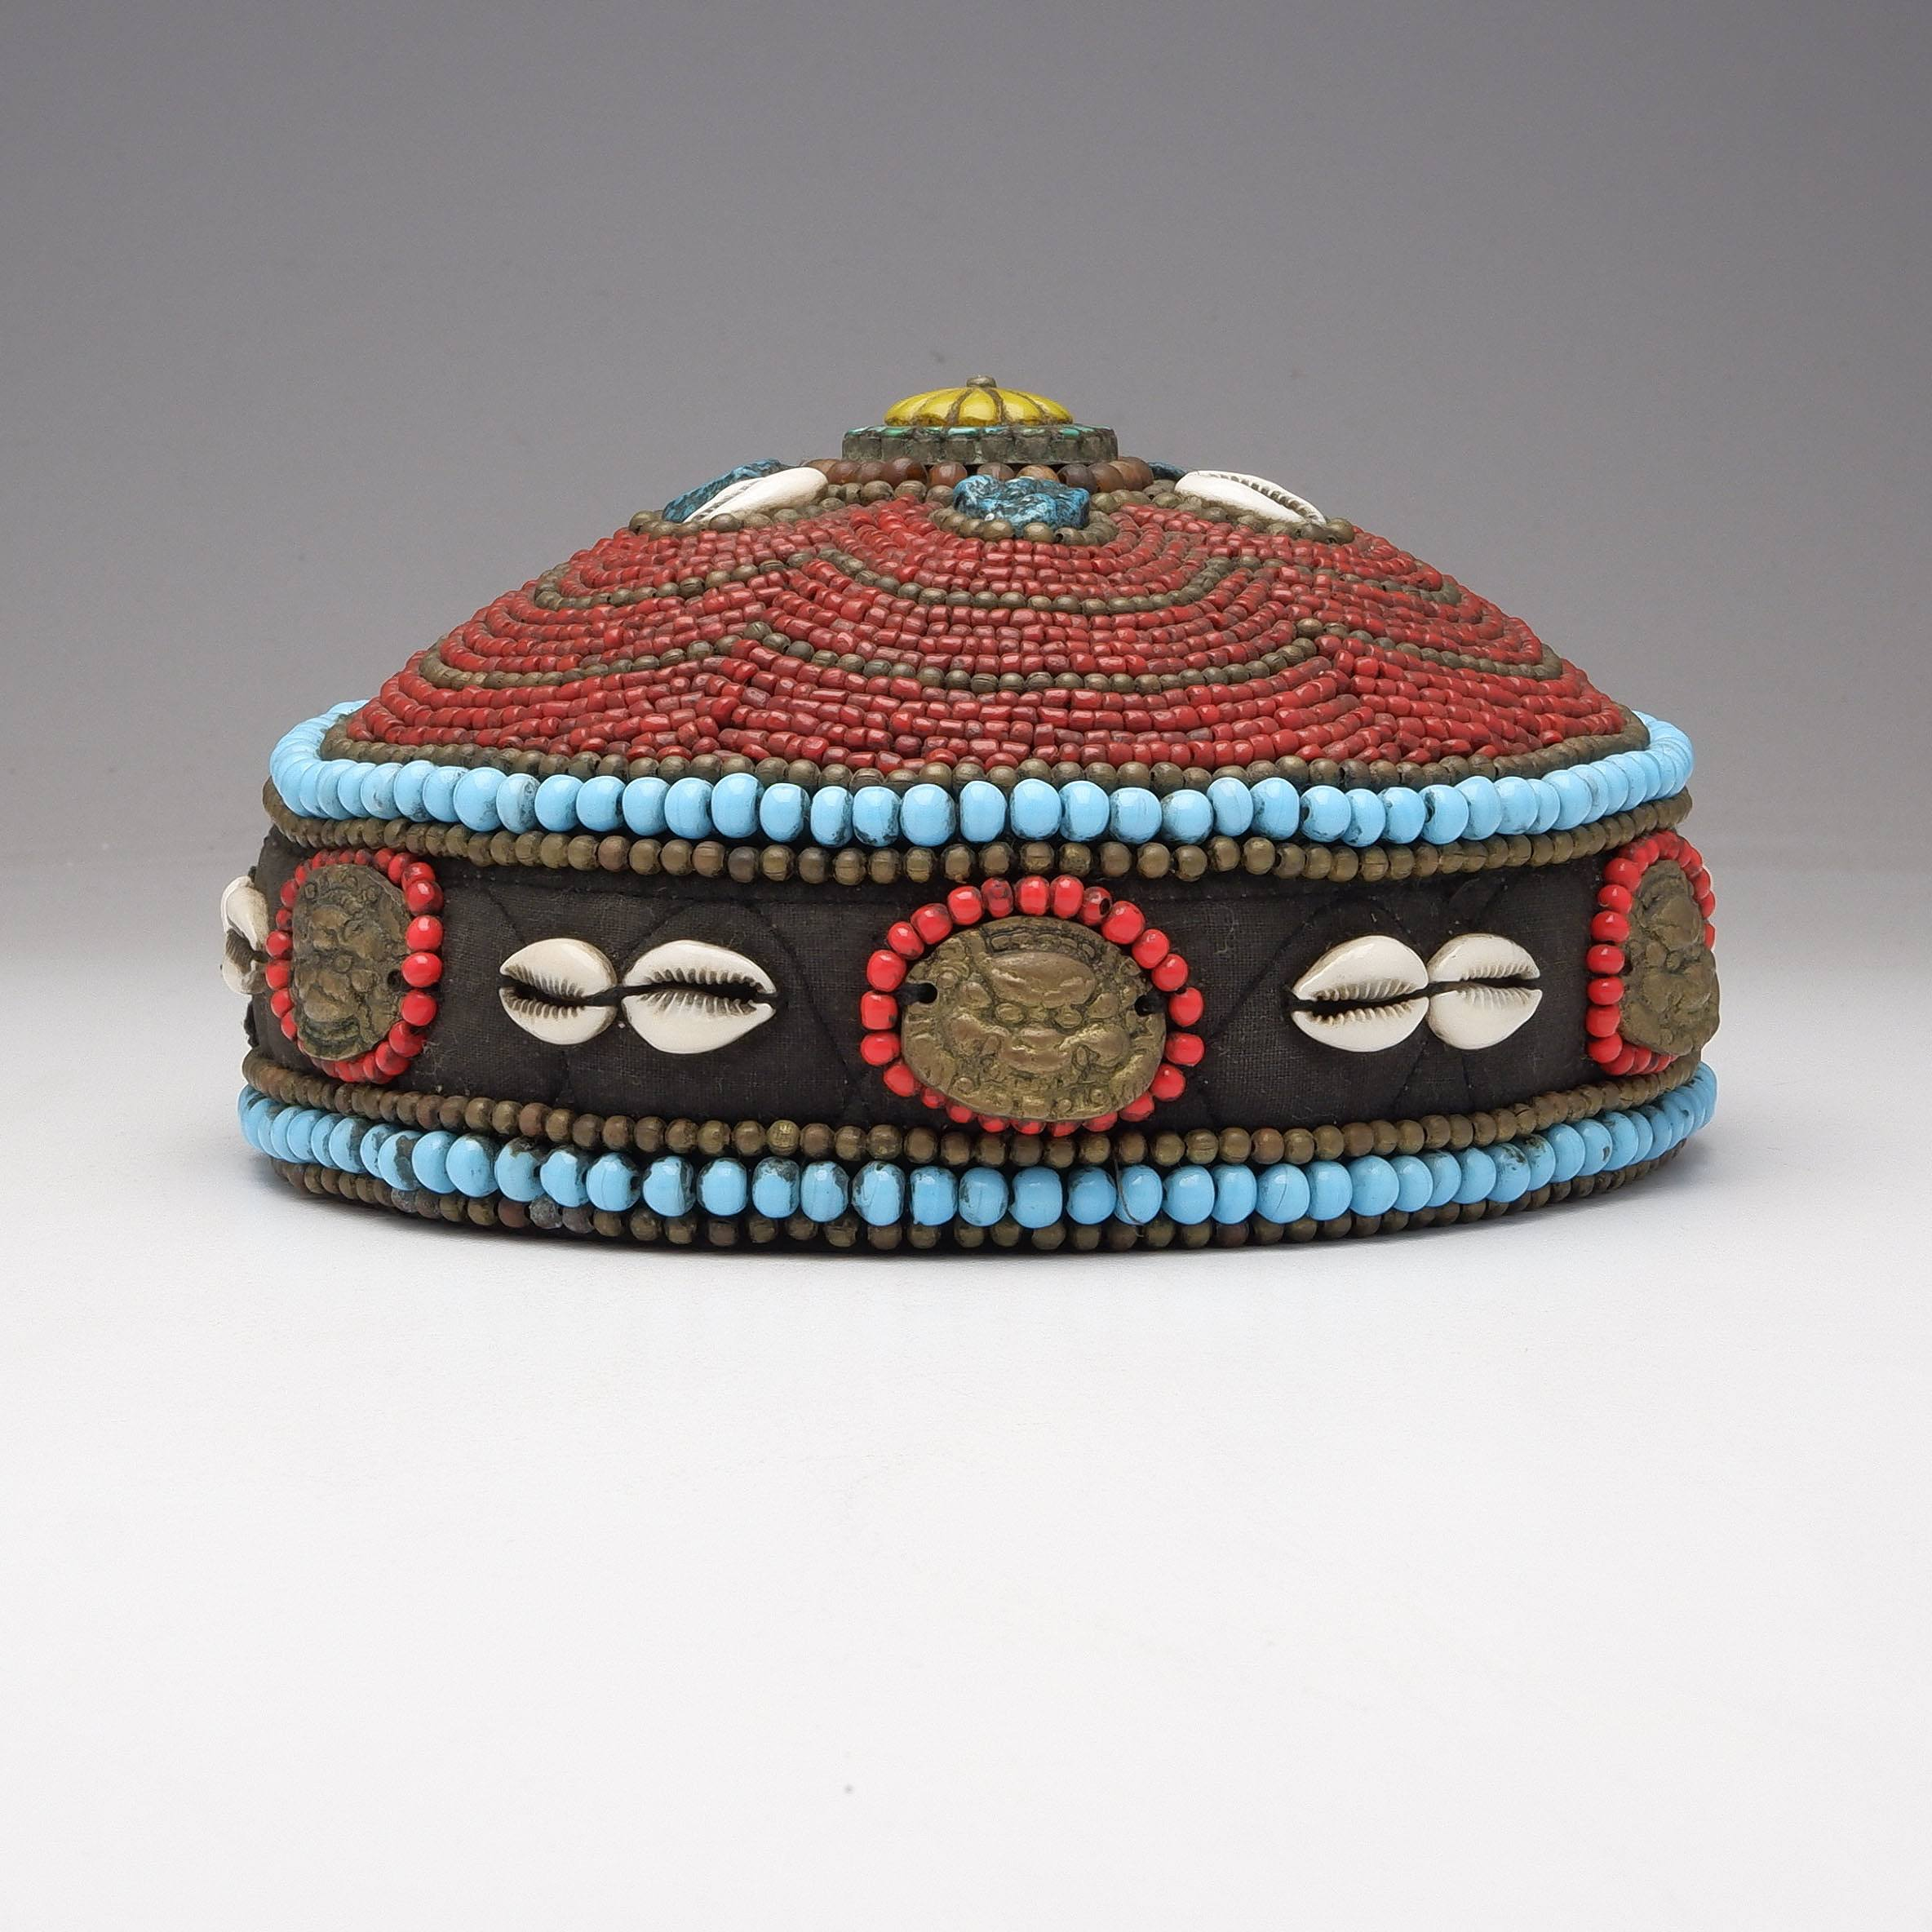 'Tibetan Turquoise and Coral Beaded Priests Hat'